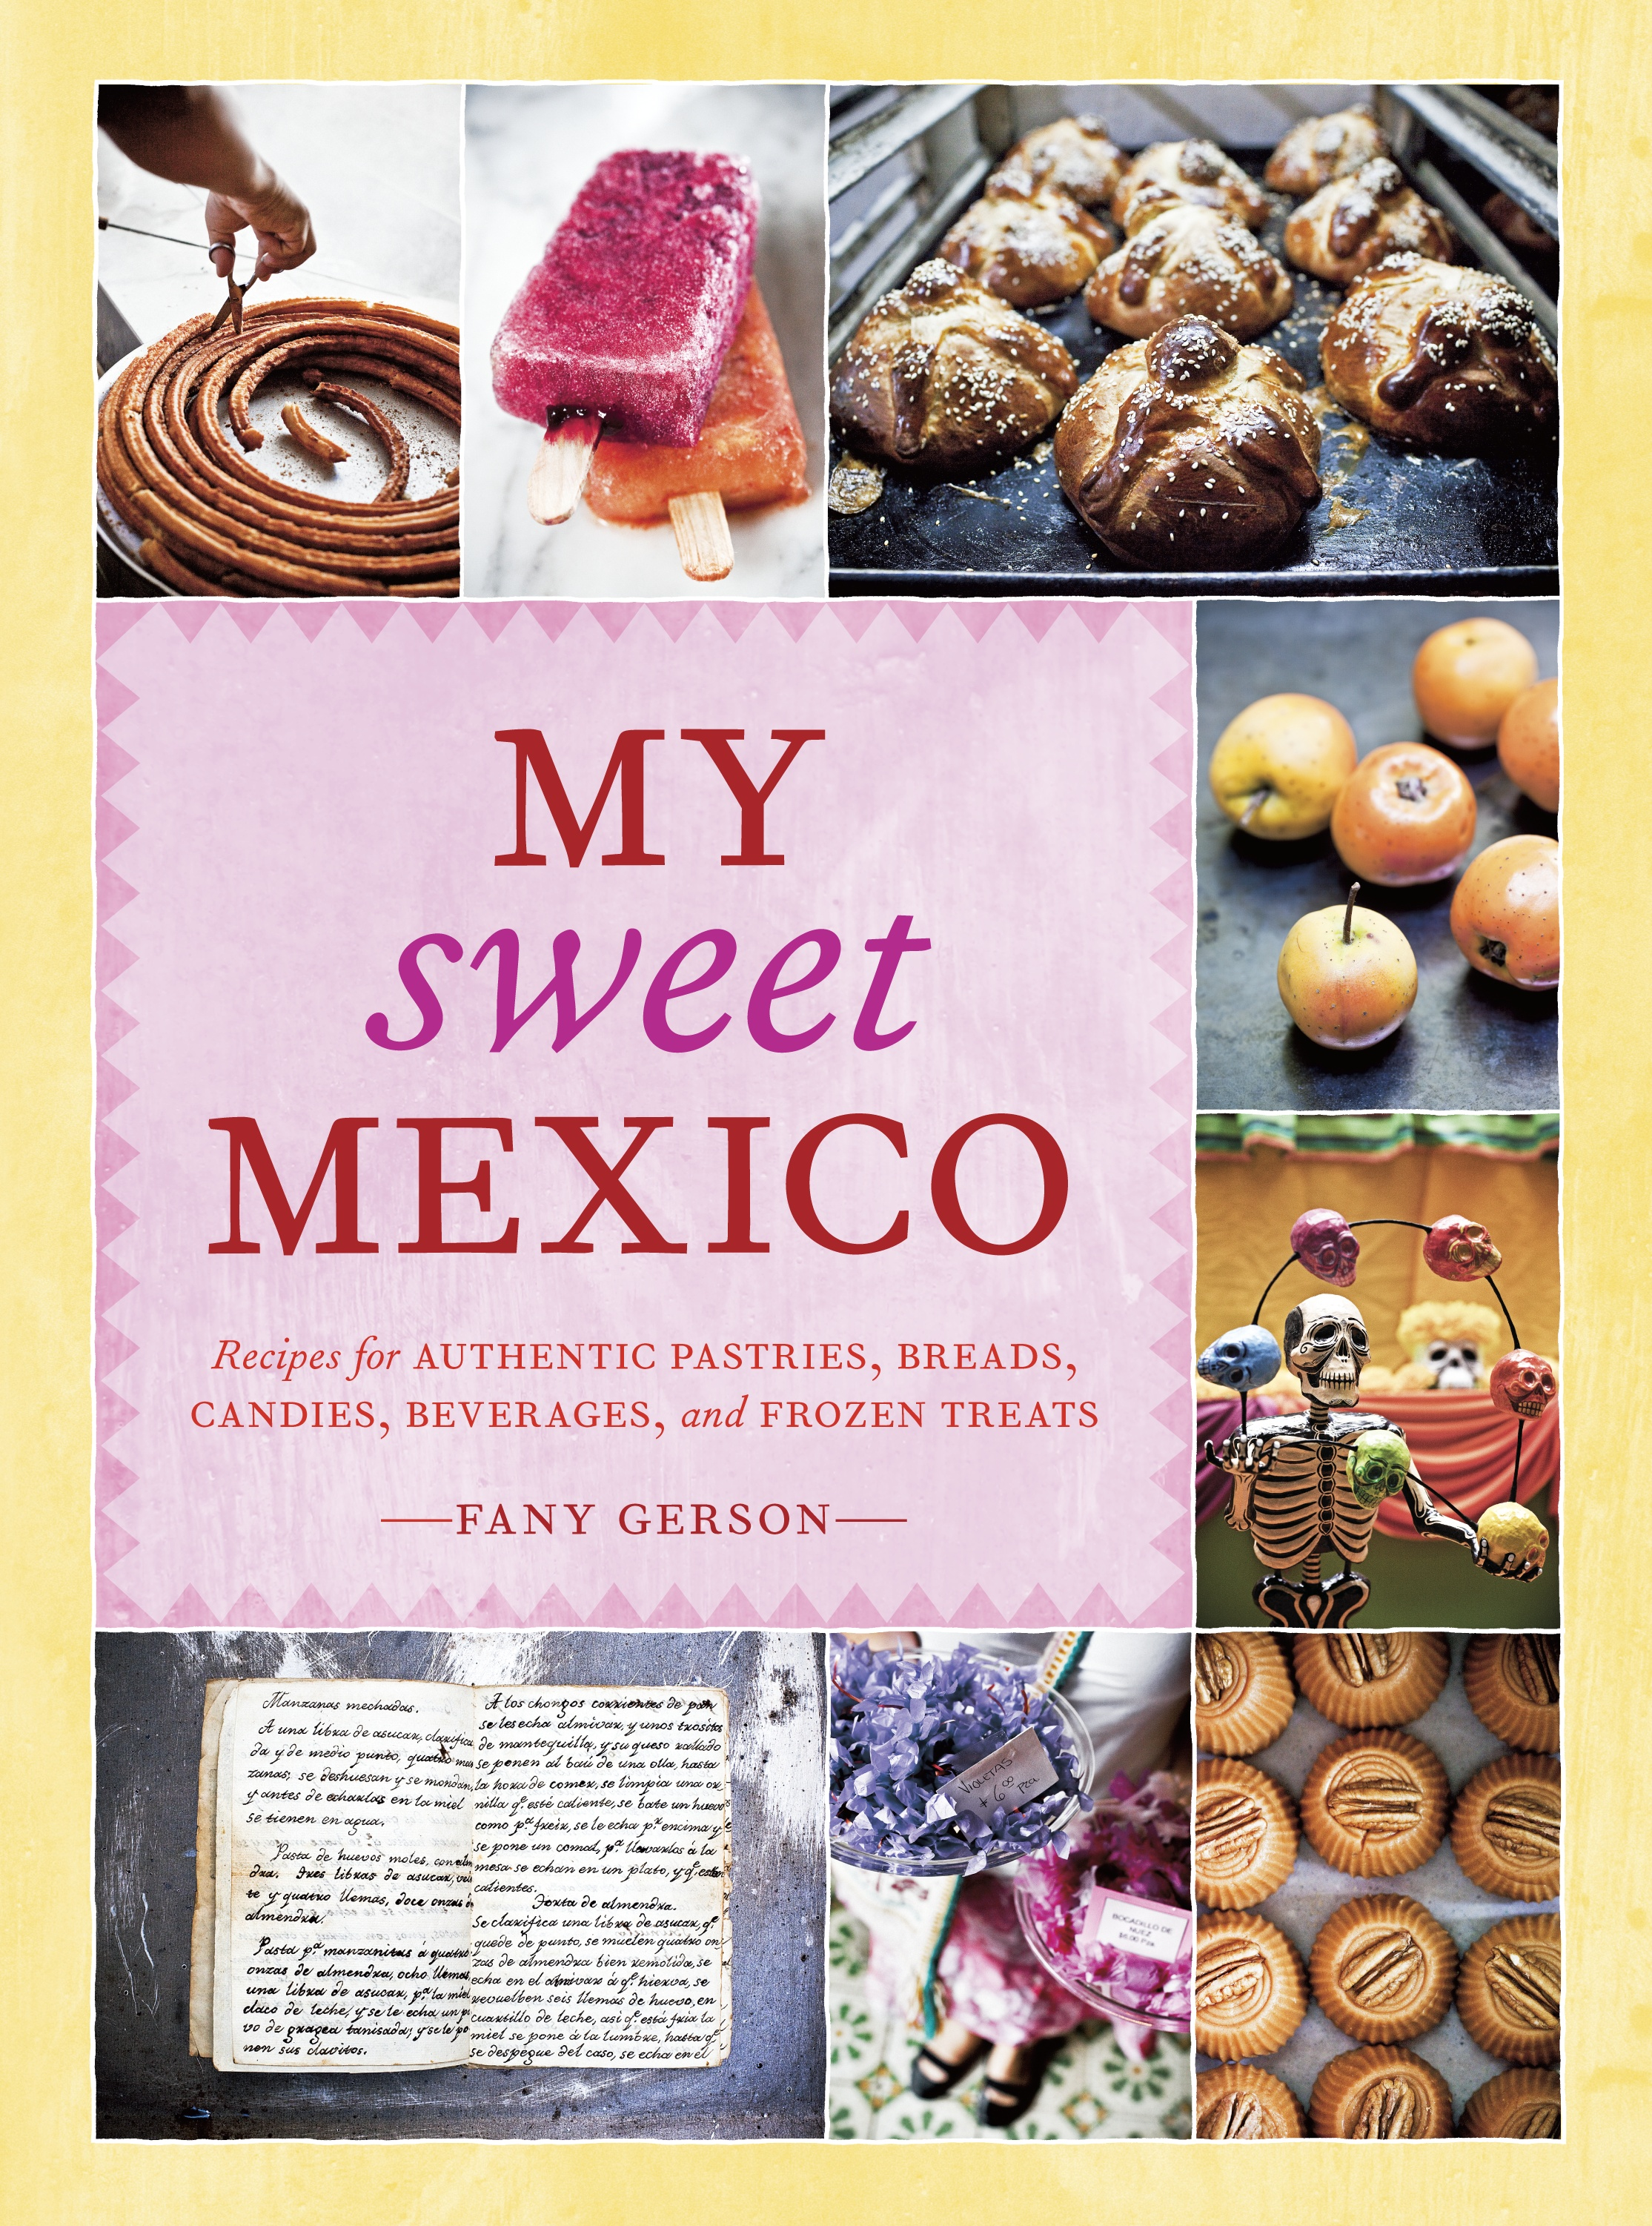 New Mexico Mexican Food Recipes